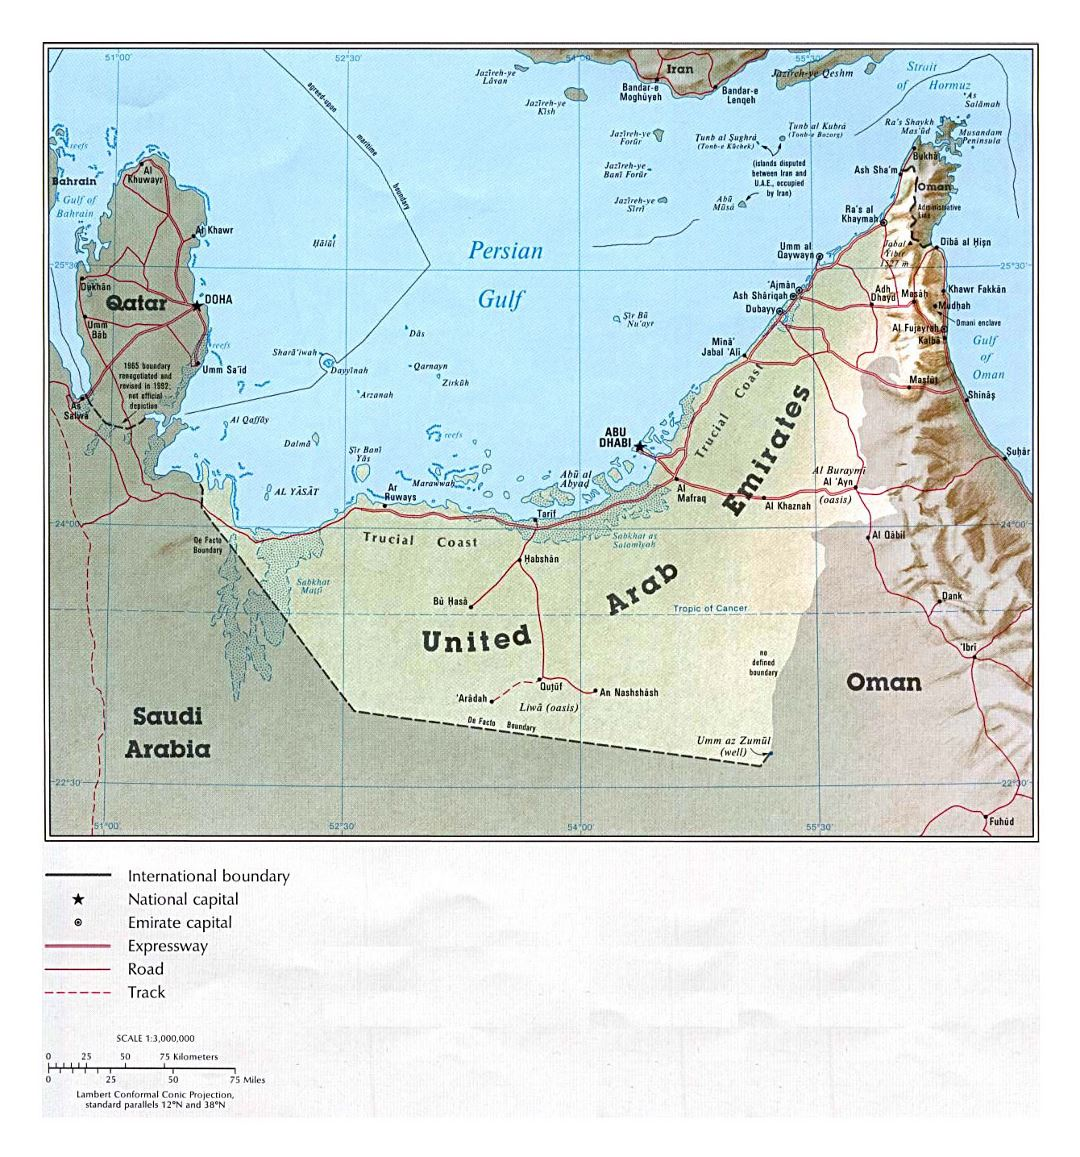 Detailed political map of UAE with relief, roads and cities - 1993